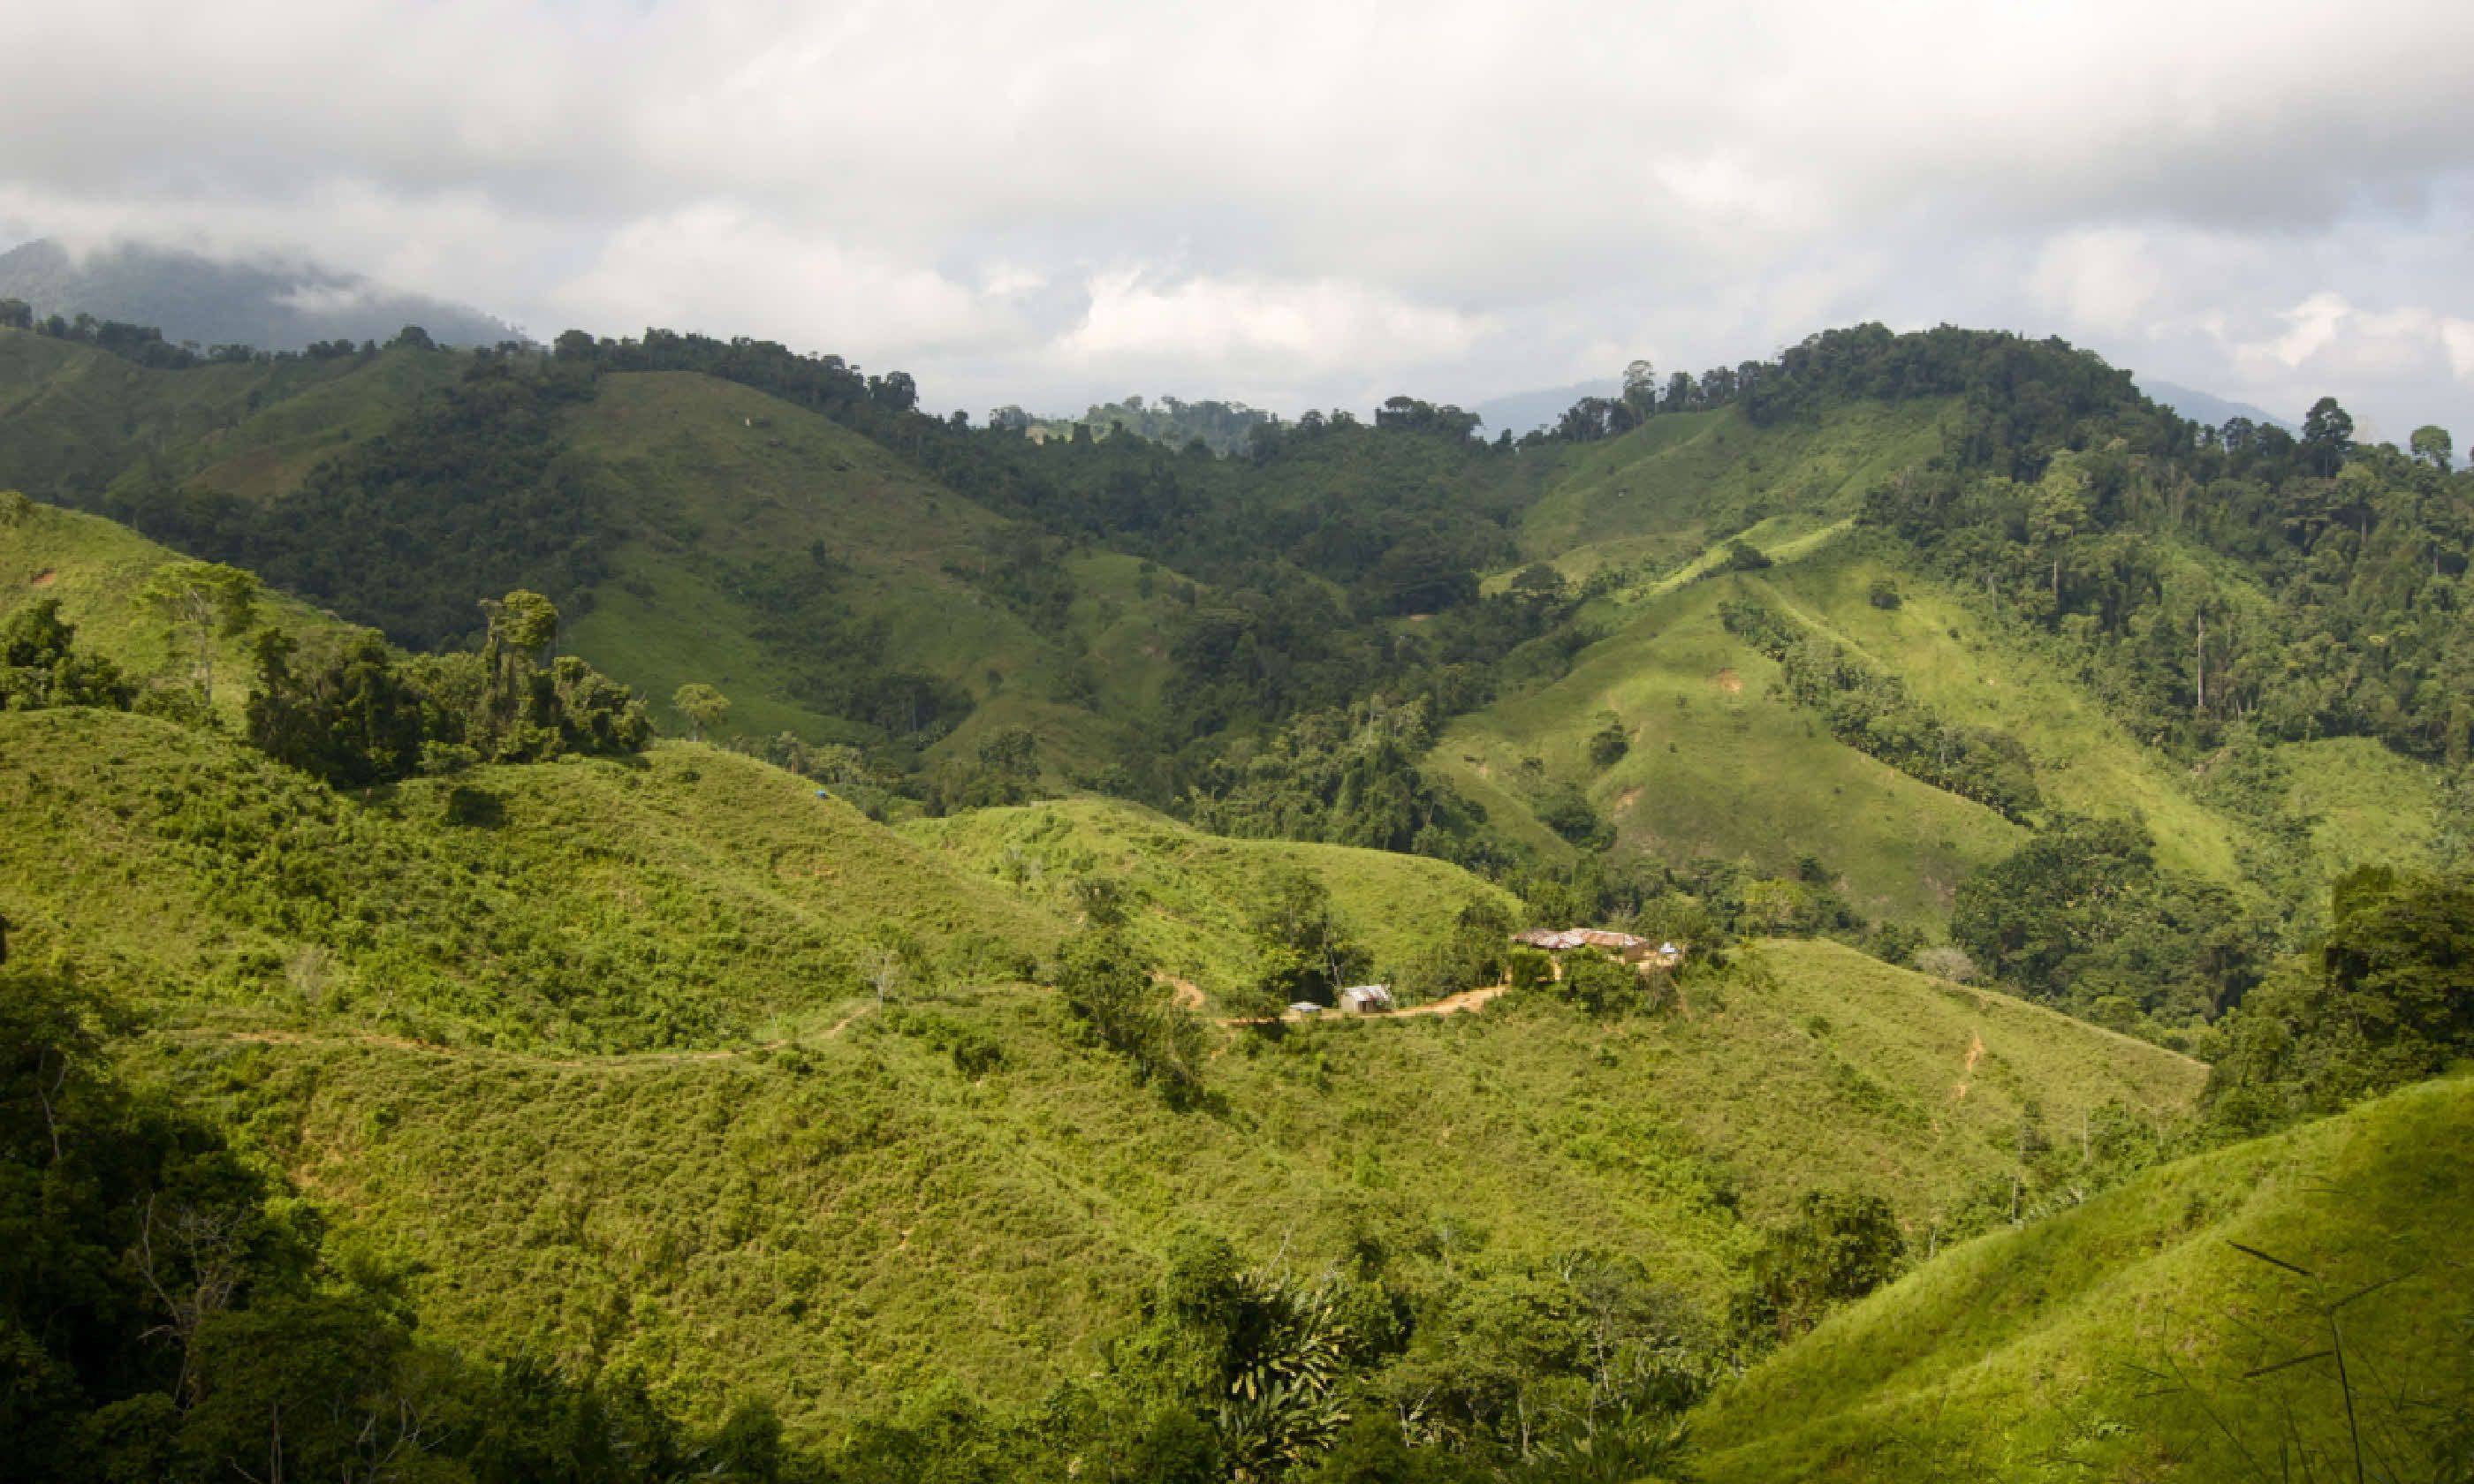 Trekking through the jungle in Colombia (Shutterstock)